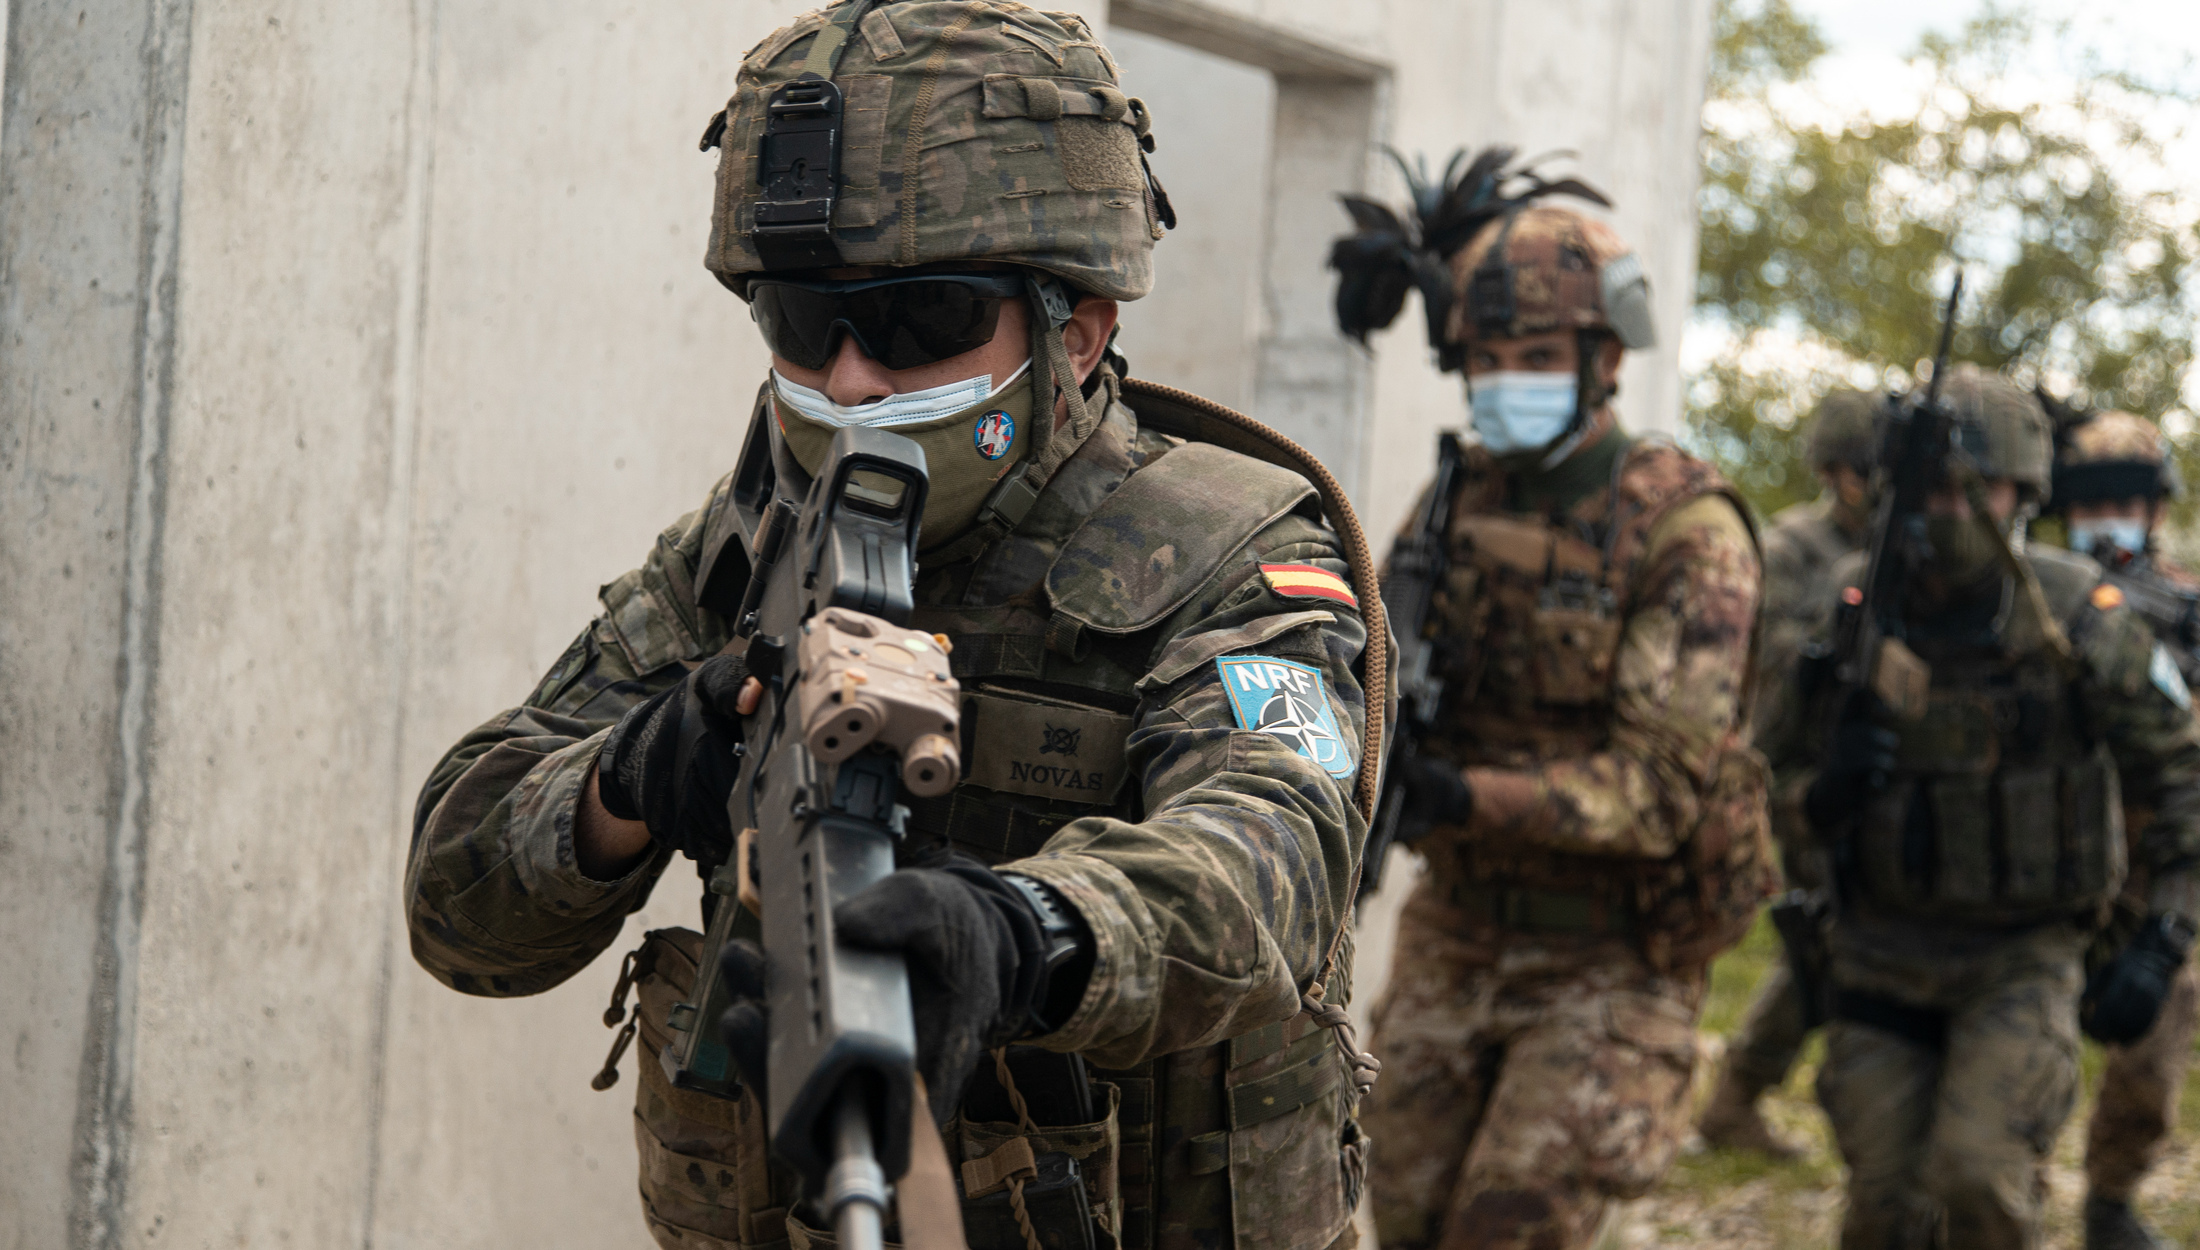 NATO - Photo gallery: Exercise Steadfast Defender 2021, 27 ...